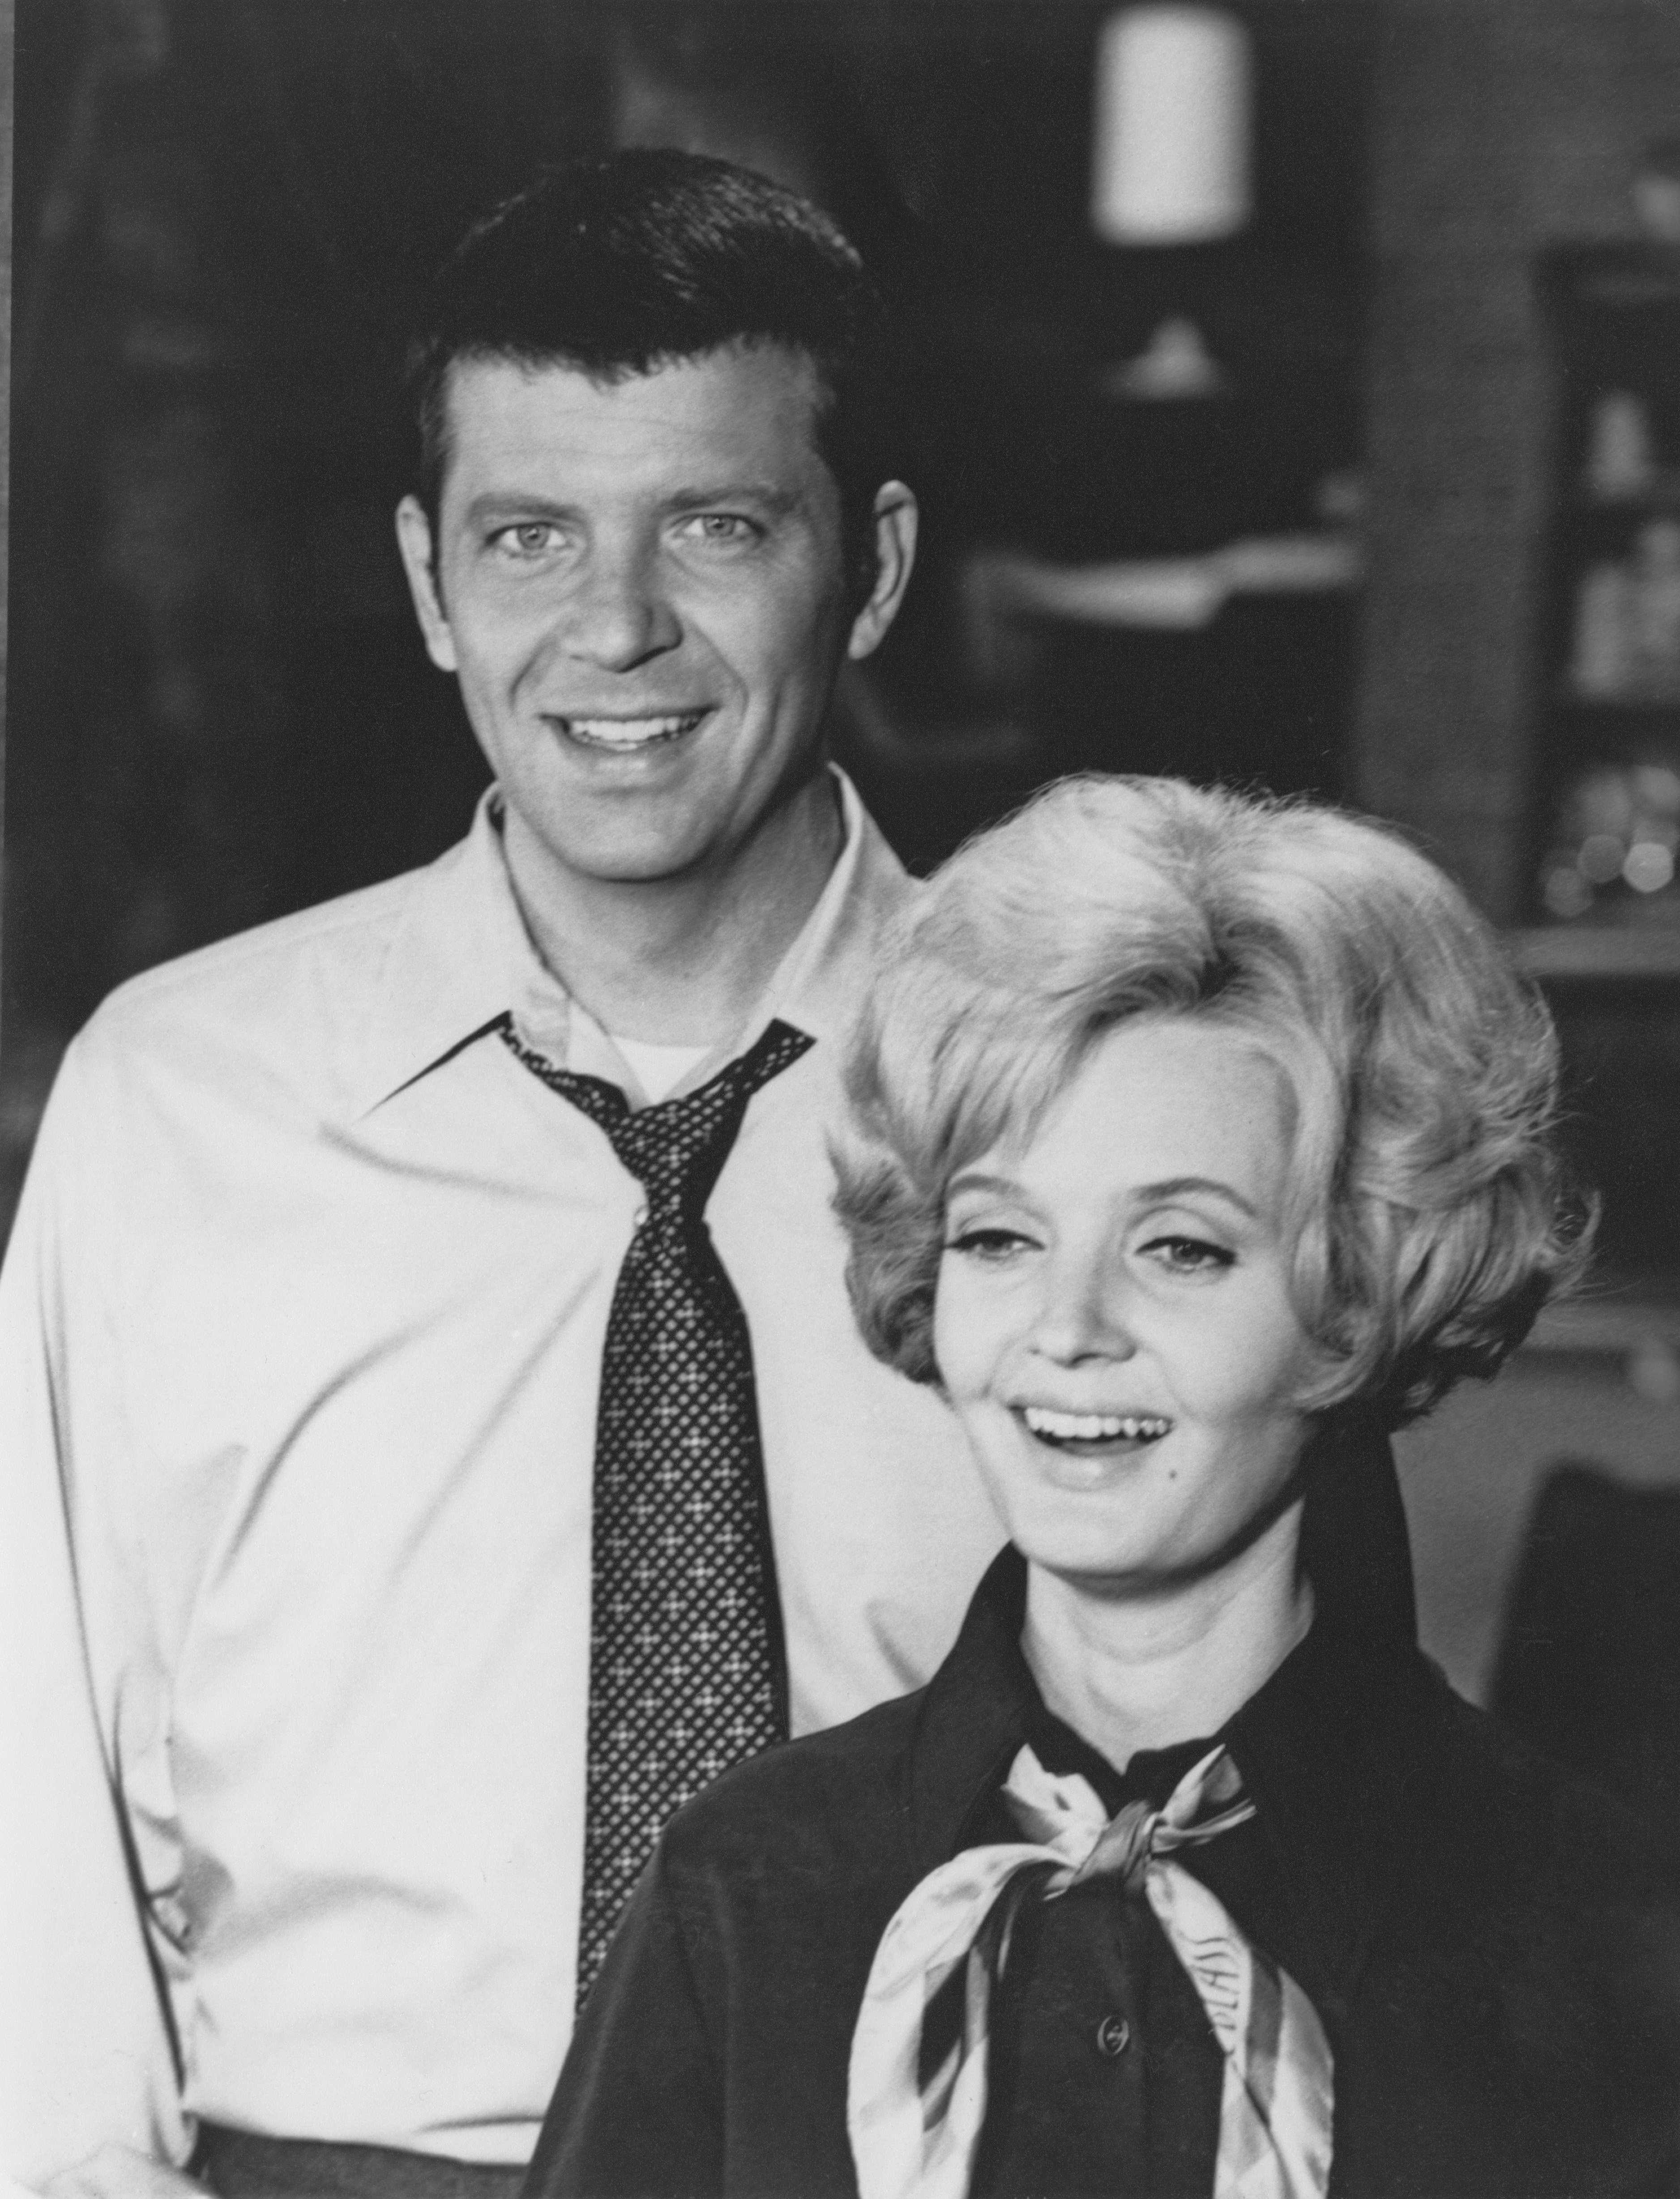 American actors Robert Reed (1932 - 1992), as Mike Brady, and Florence Henderson as Carol Brady, in the US TV sitcom 'The Brady Bunch', circa 1970. | Source: Getty Images